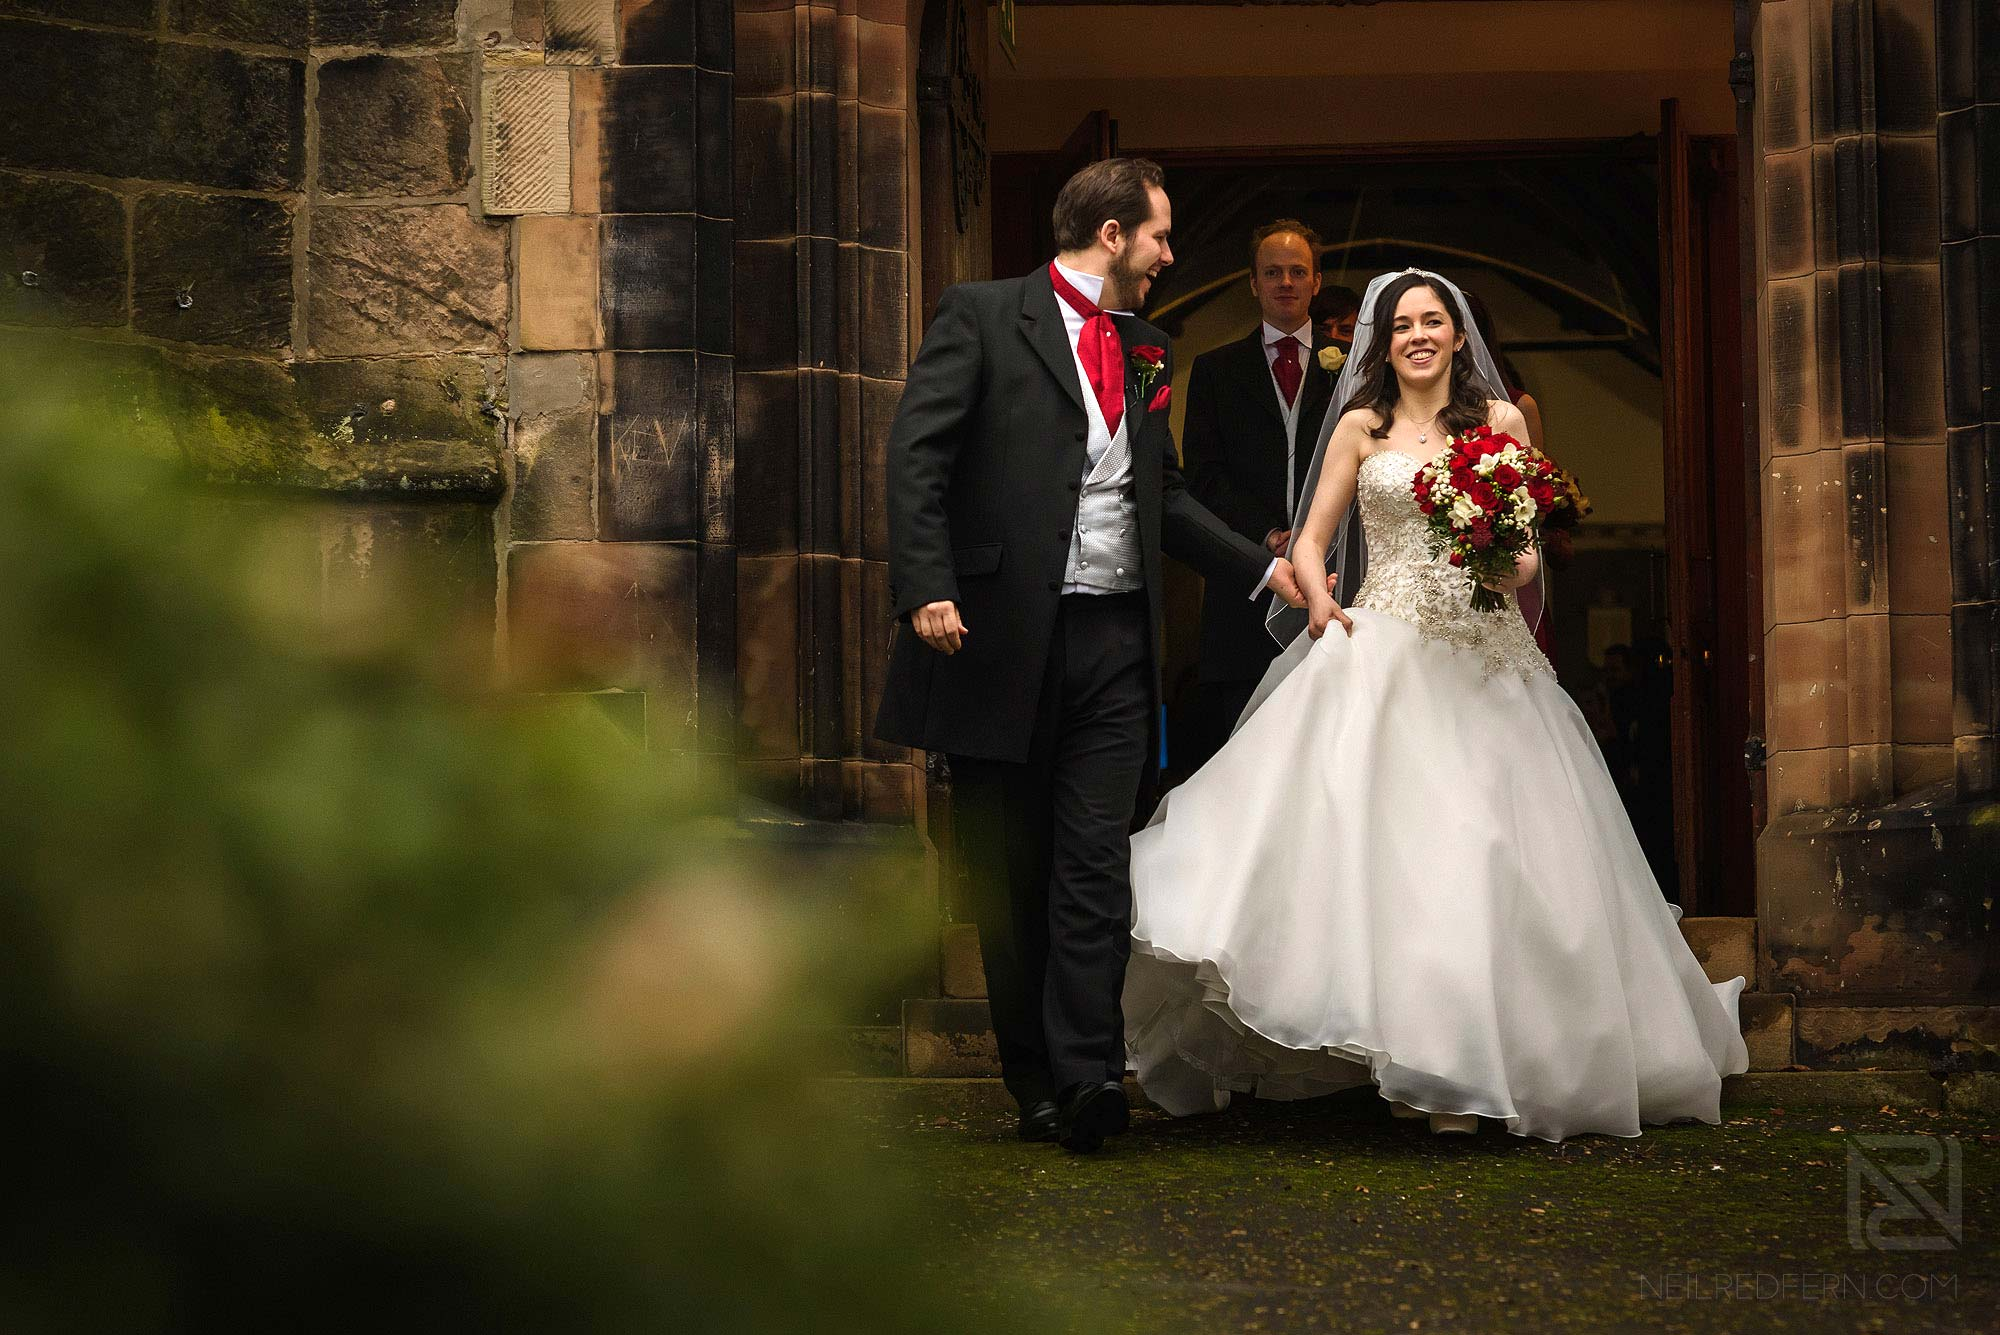 bride and groom leaving church together